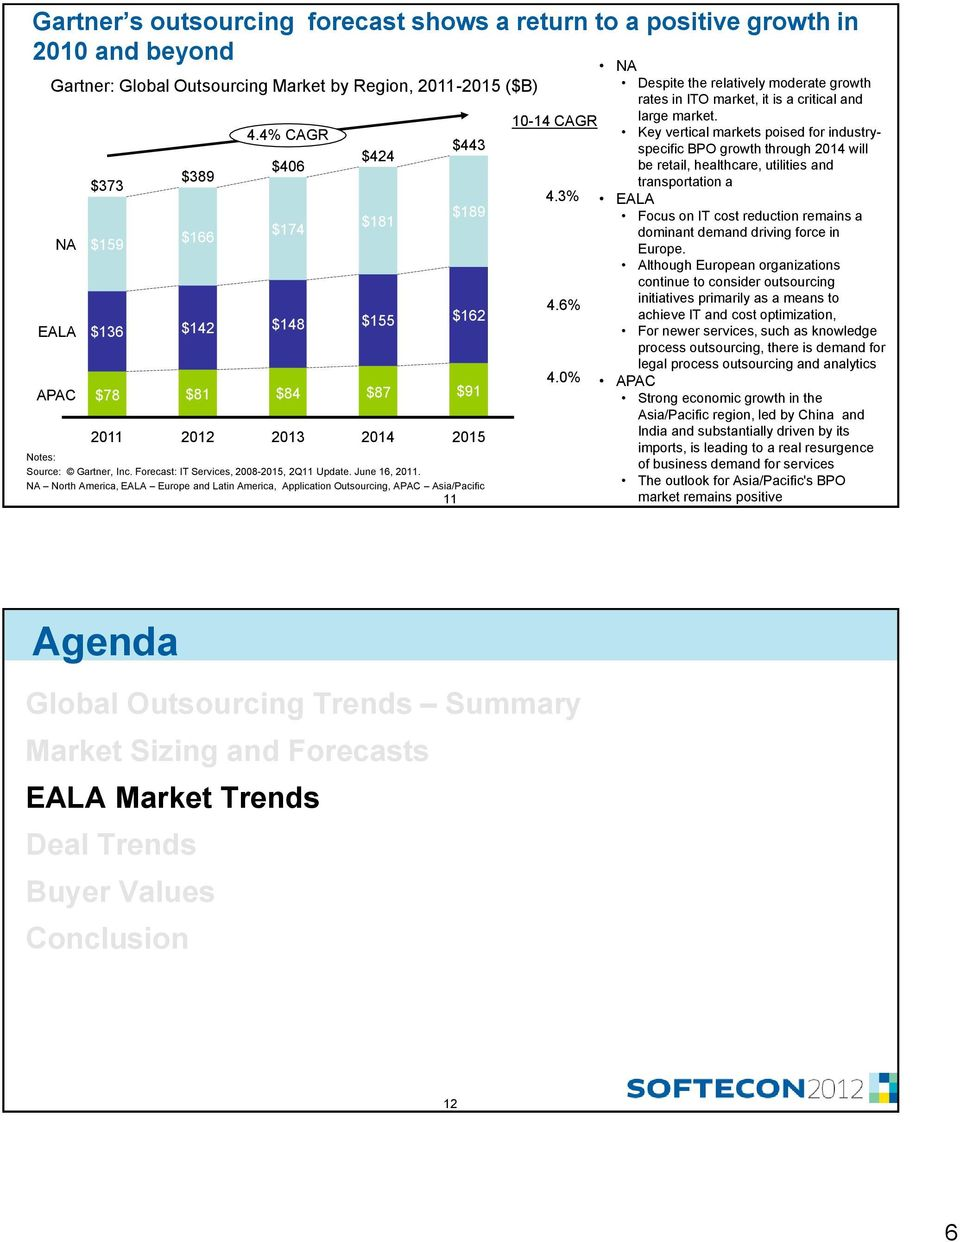 NA North America, EALA Europe and Latin America, Application Outsourcing, APAC Asia/Pacific 11 10-14 CAGR 4.3% 4.6% 4.